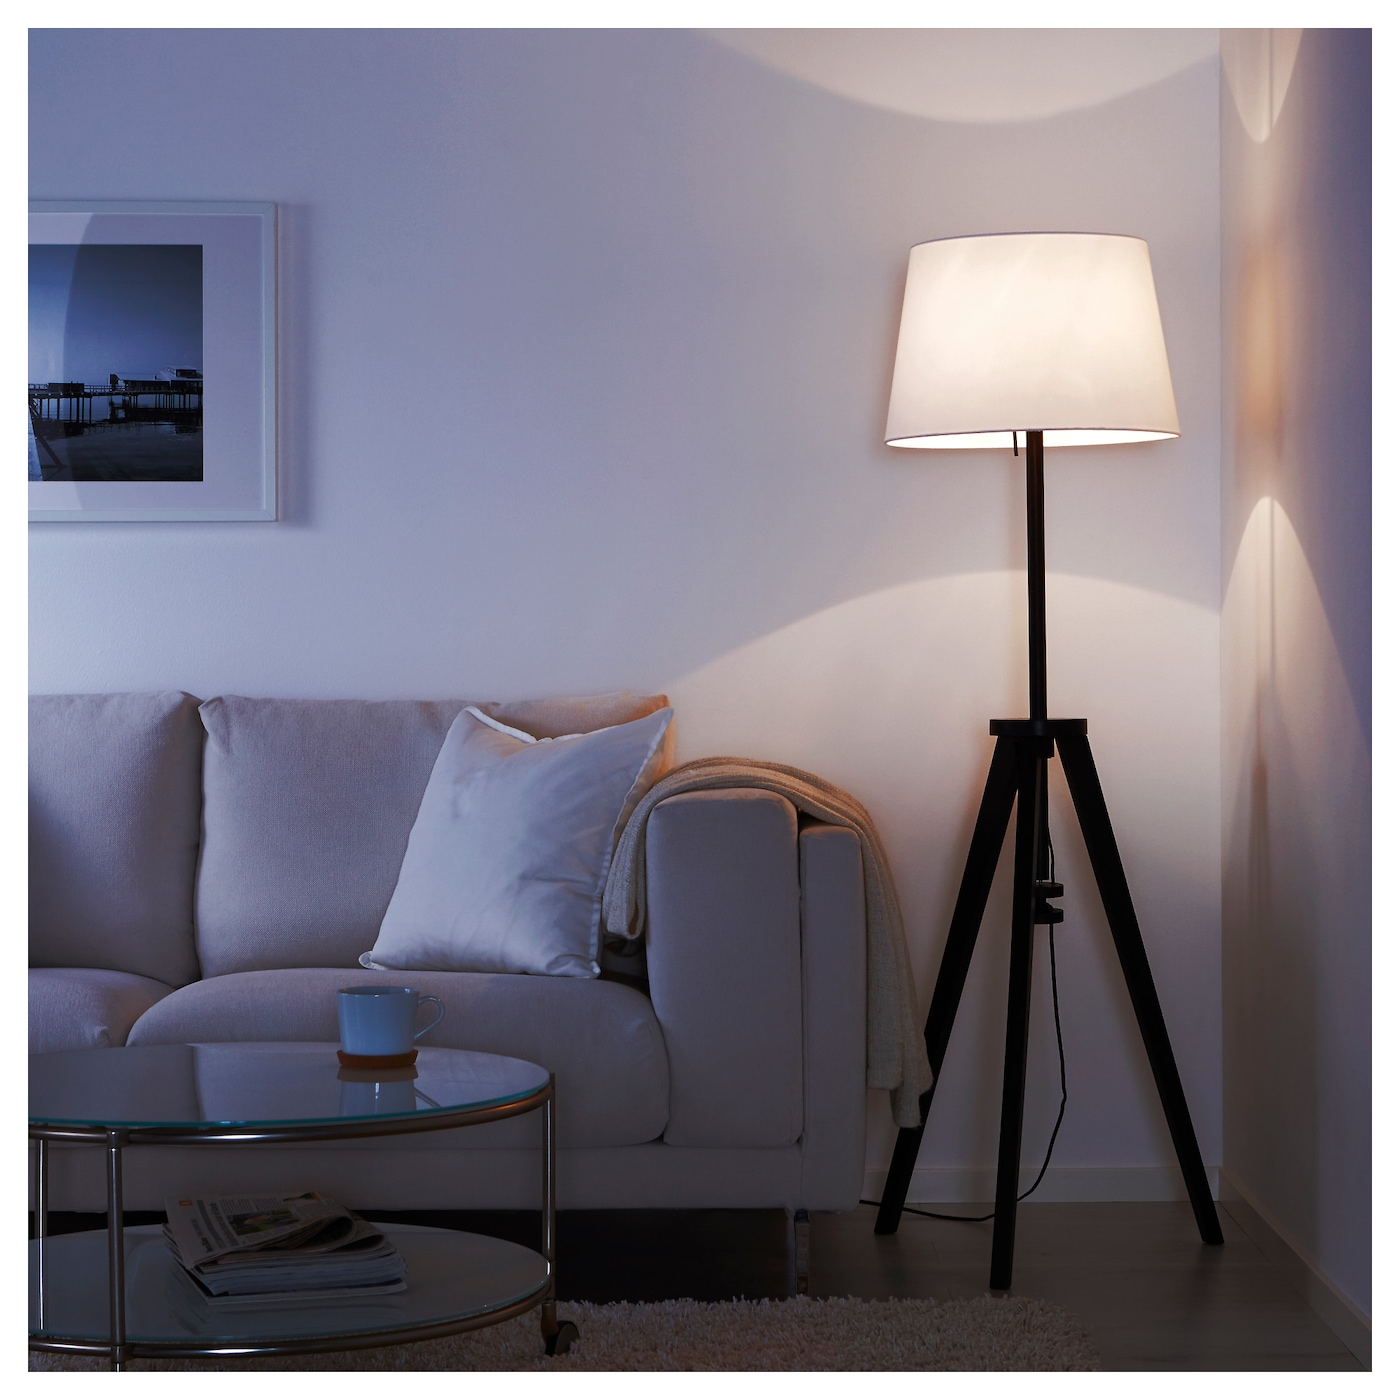 IKEA LAUTERS floor lamp base The height is adjustable to suit your lighting needs.